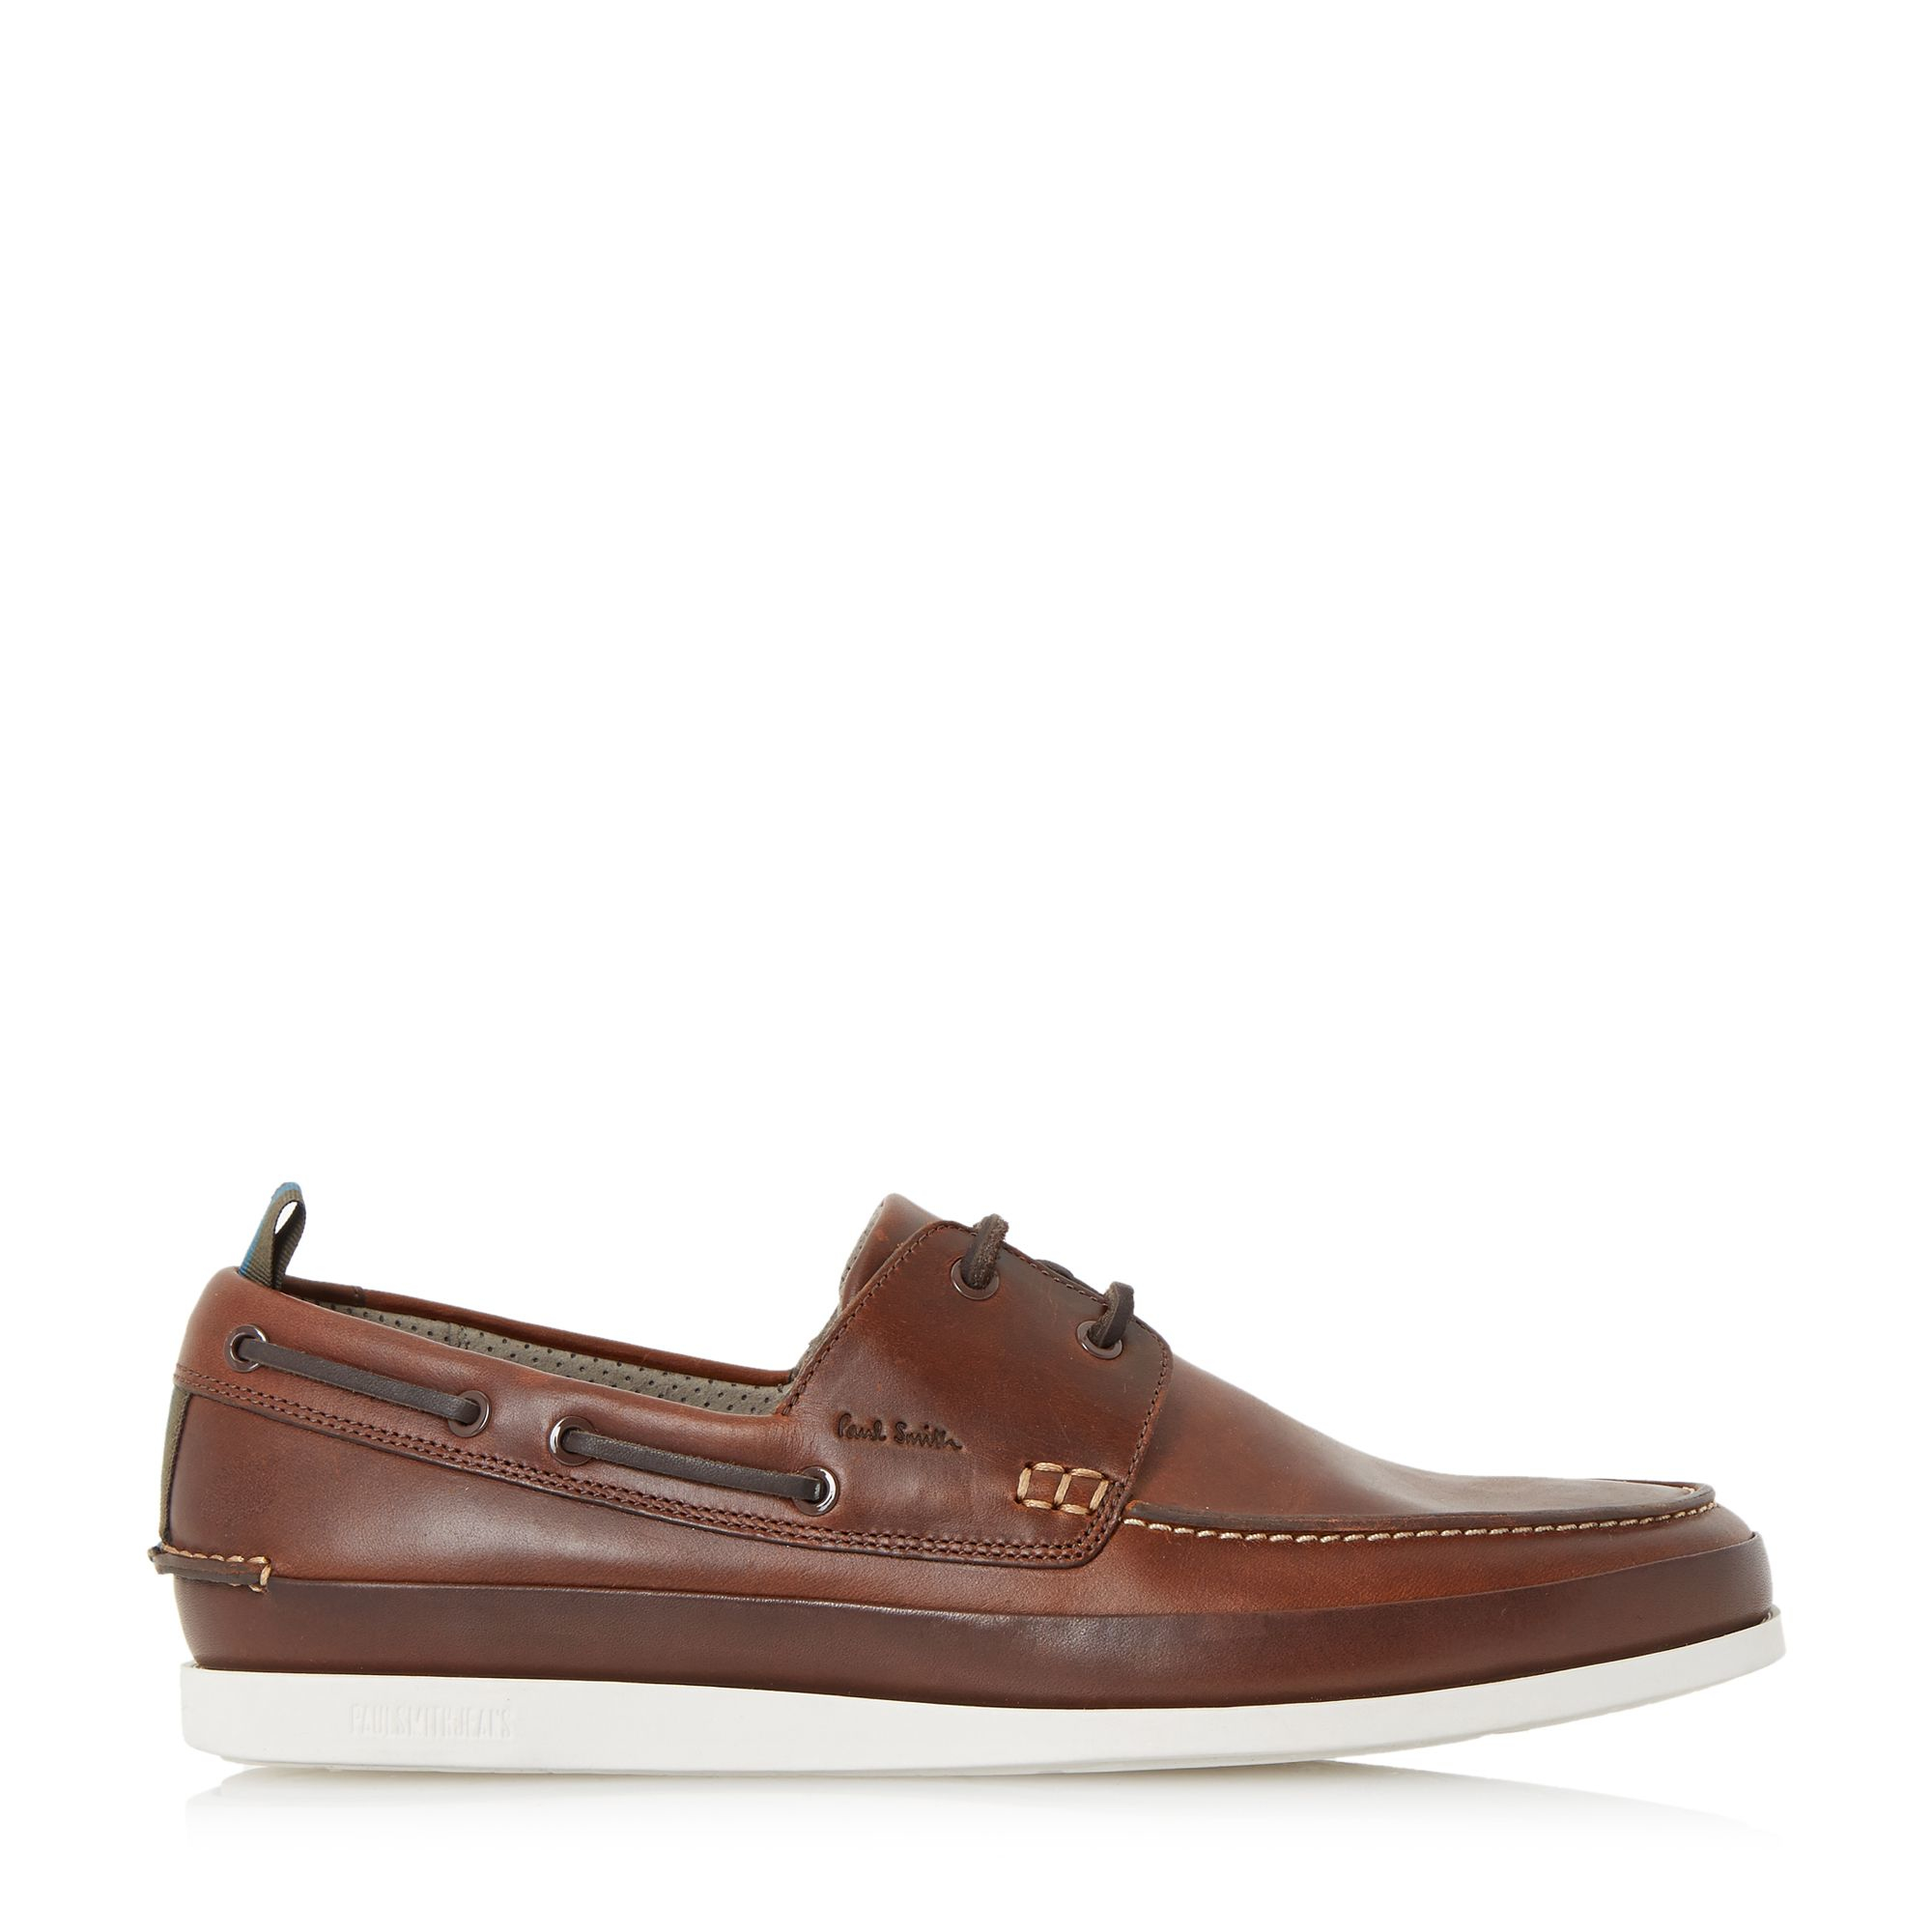 Paul Smith Leather Branca White Sole Boat Shoes in Tan (Brown) for Men